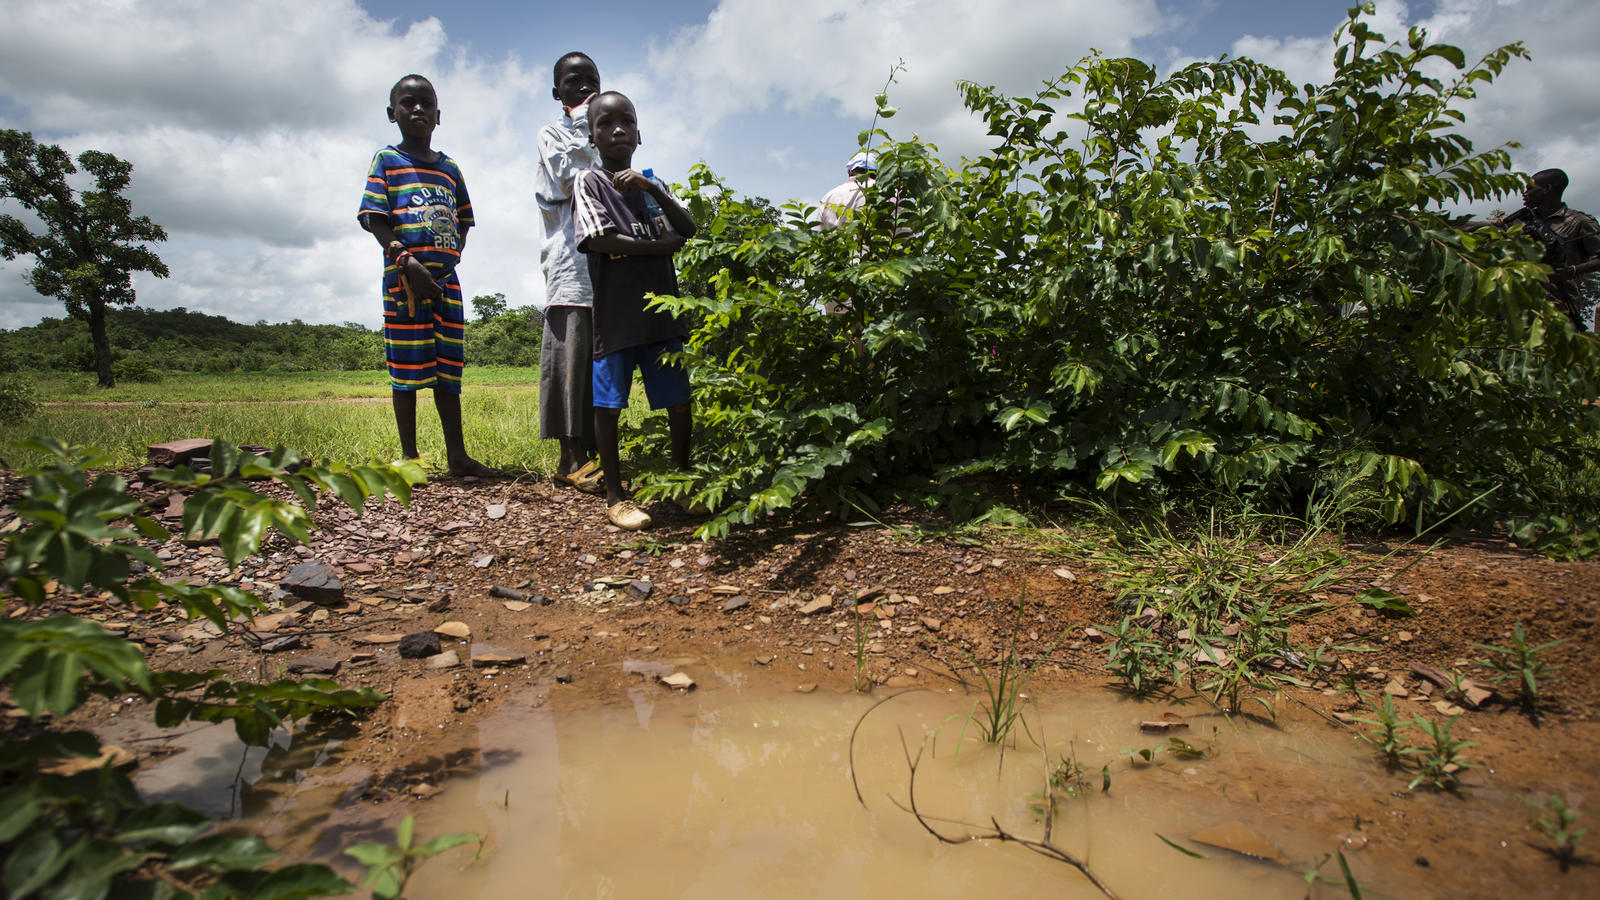 Children look at a contaminated pond in Mali.